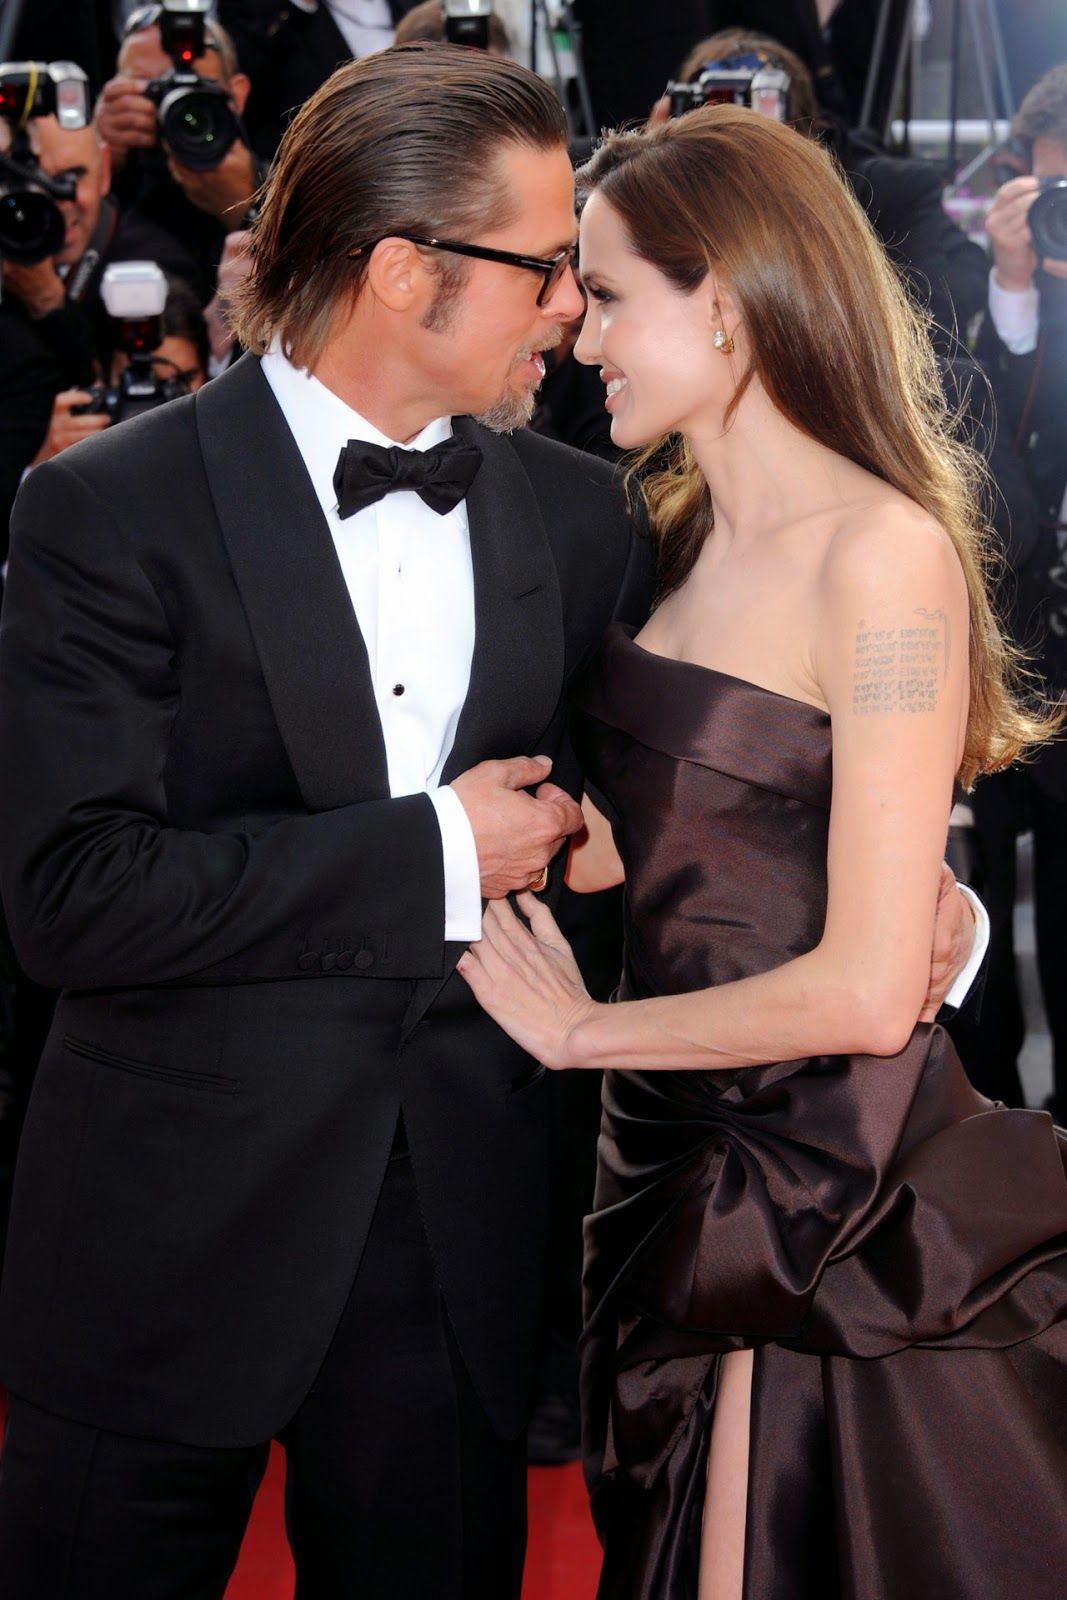 Kollayi S Blog Angelina Jolie And Brad Pitt Finally Married Brad Pitt And Angelina Jolie Brad And Angelina Wedding Brad And Angelina